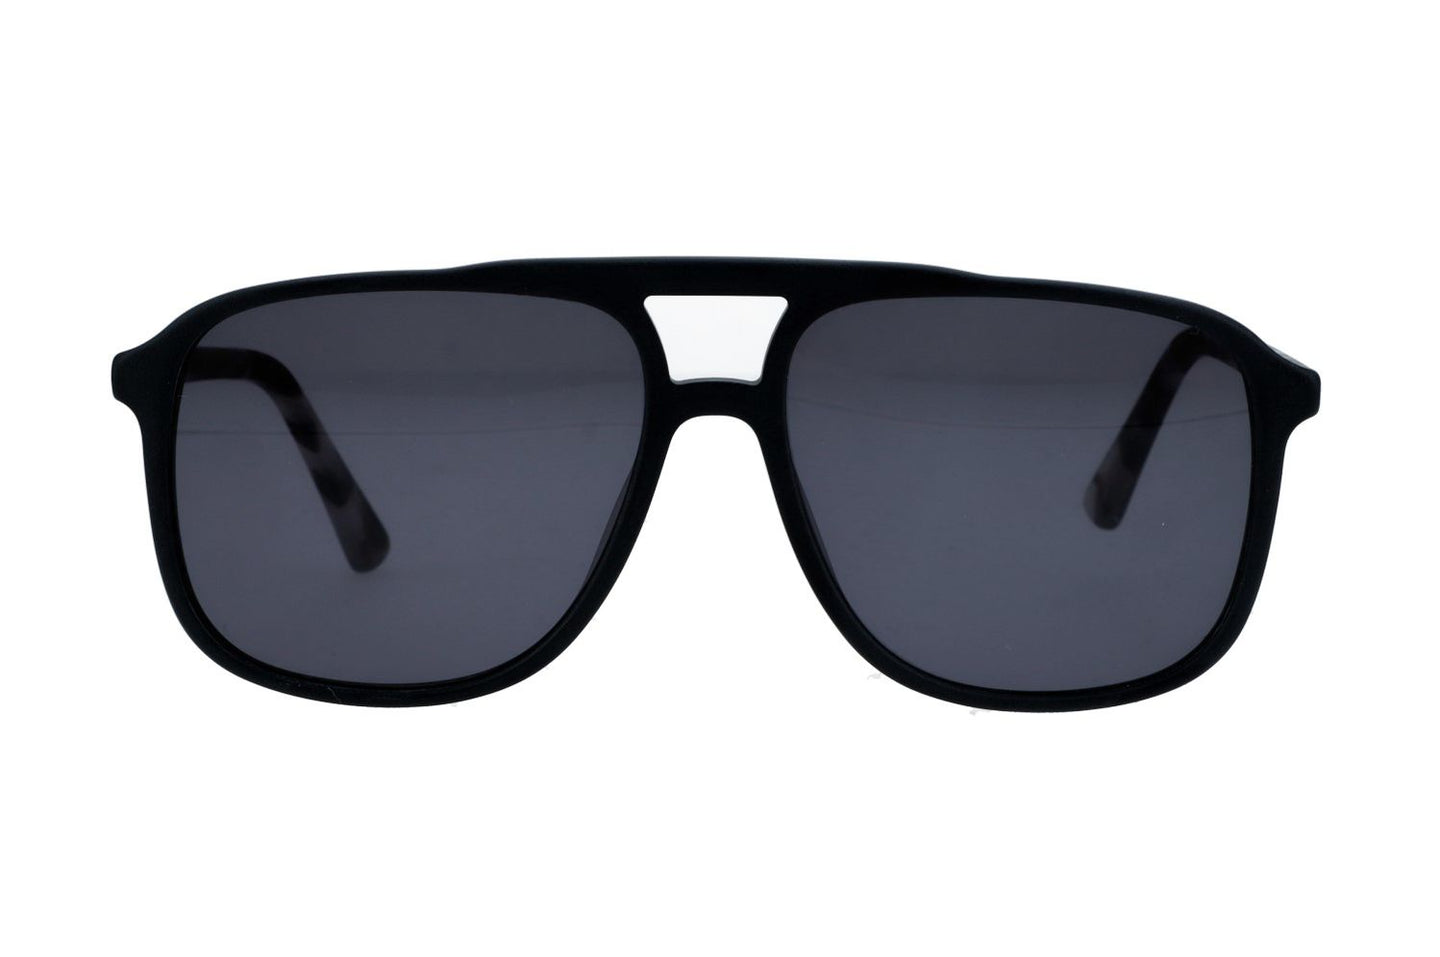 matte_black_frame_with_dark_grey_lenses